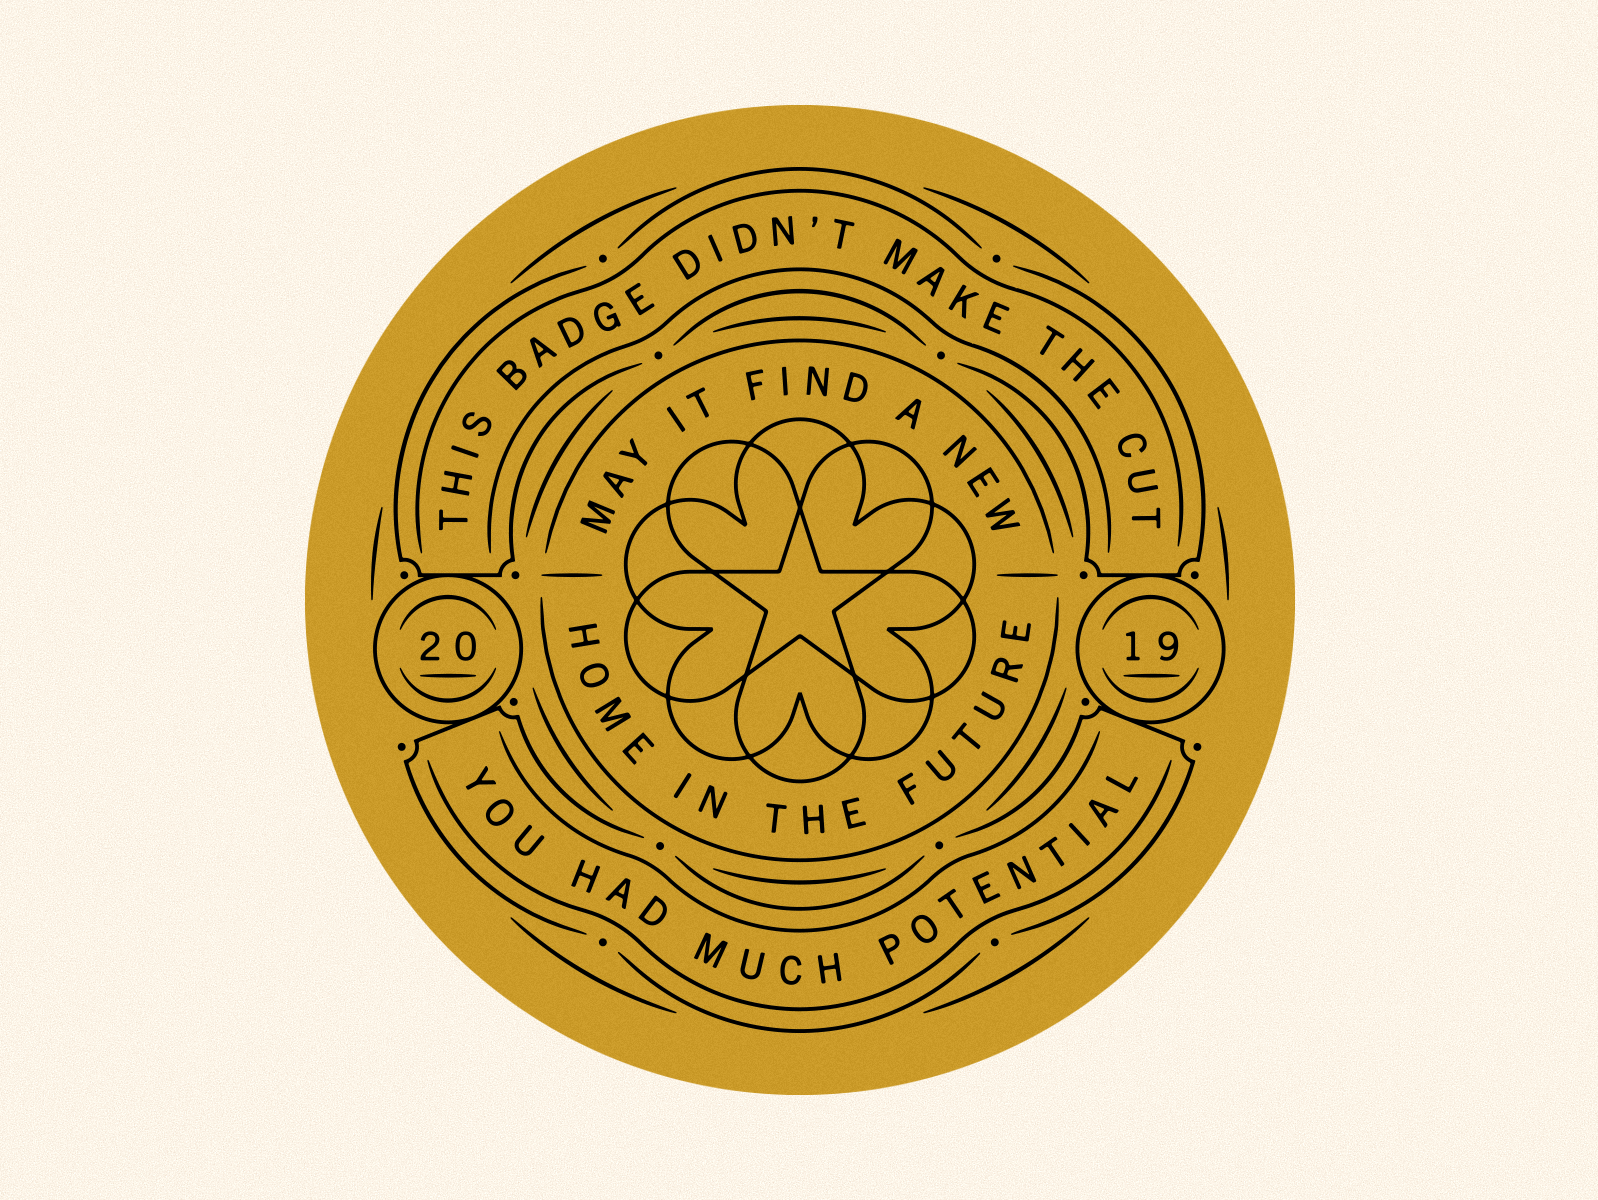 Whiskey Badge by Brent Schoepf on Dribbble